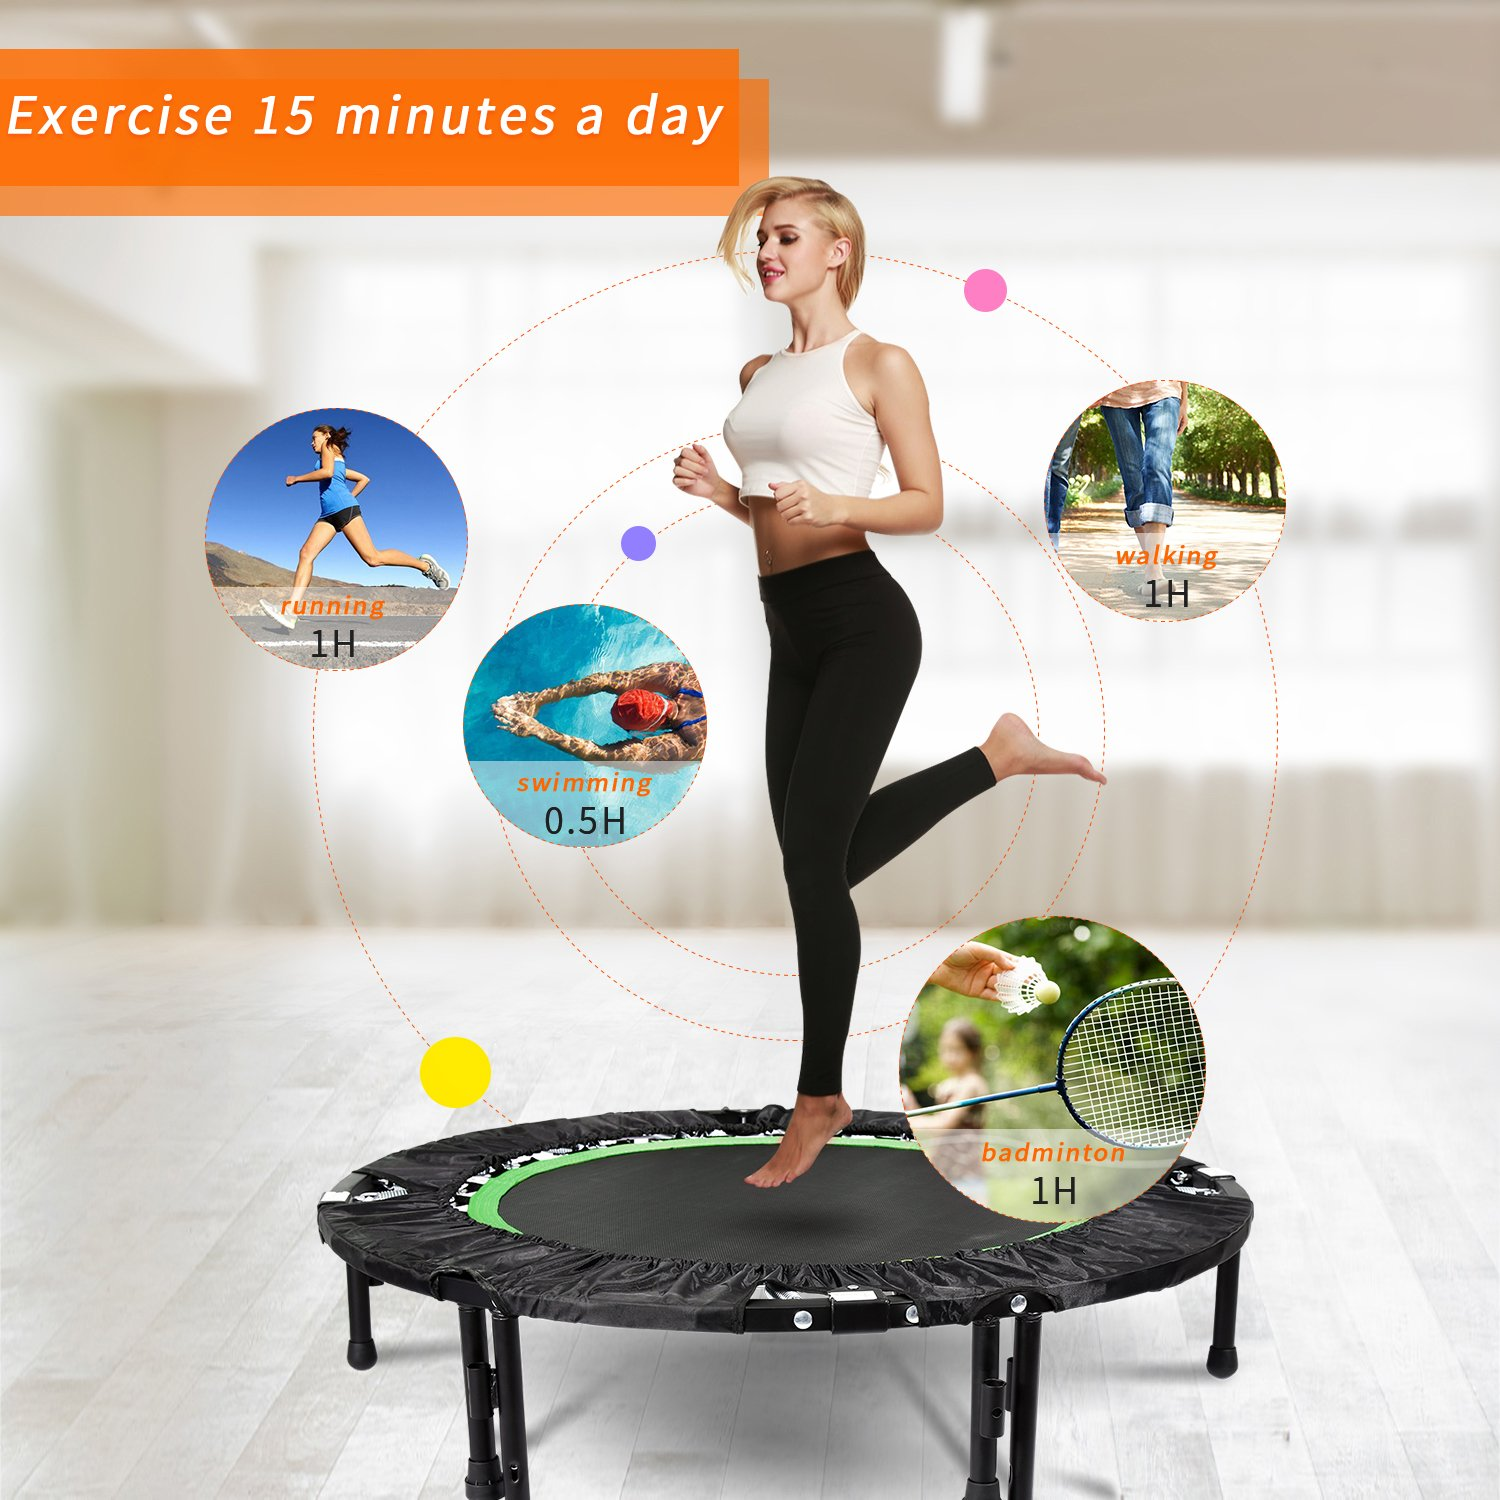 ANCHEER Foldable 40'' Mini Trampoline Rebounder, Max Load 300lbs Rebounder Trampoline Exercise Fitness Trampoline for Indoor/Garden/Workout Cardio by ANCHEER (Image #1)